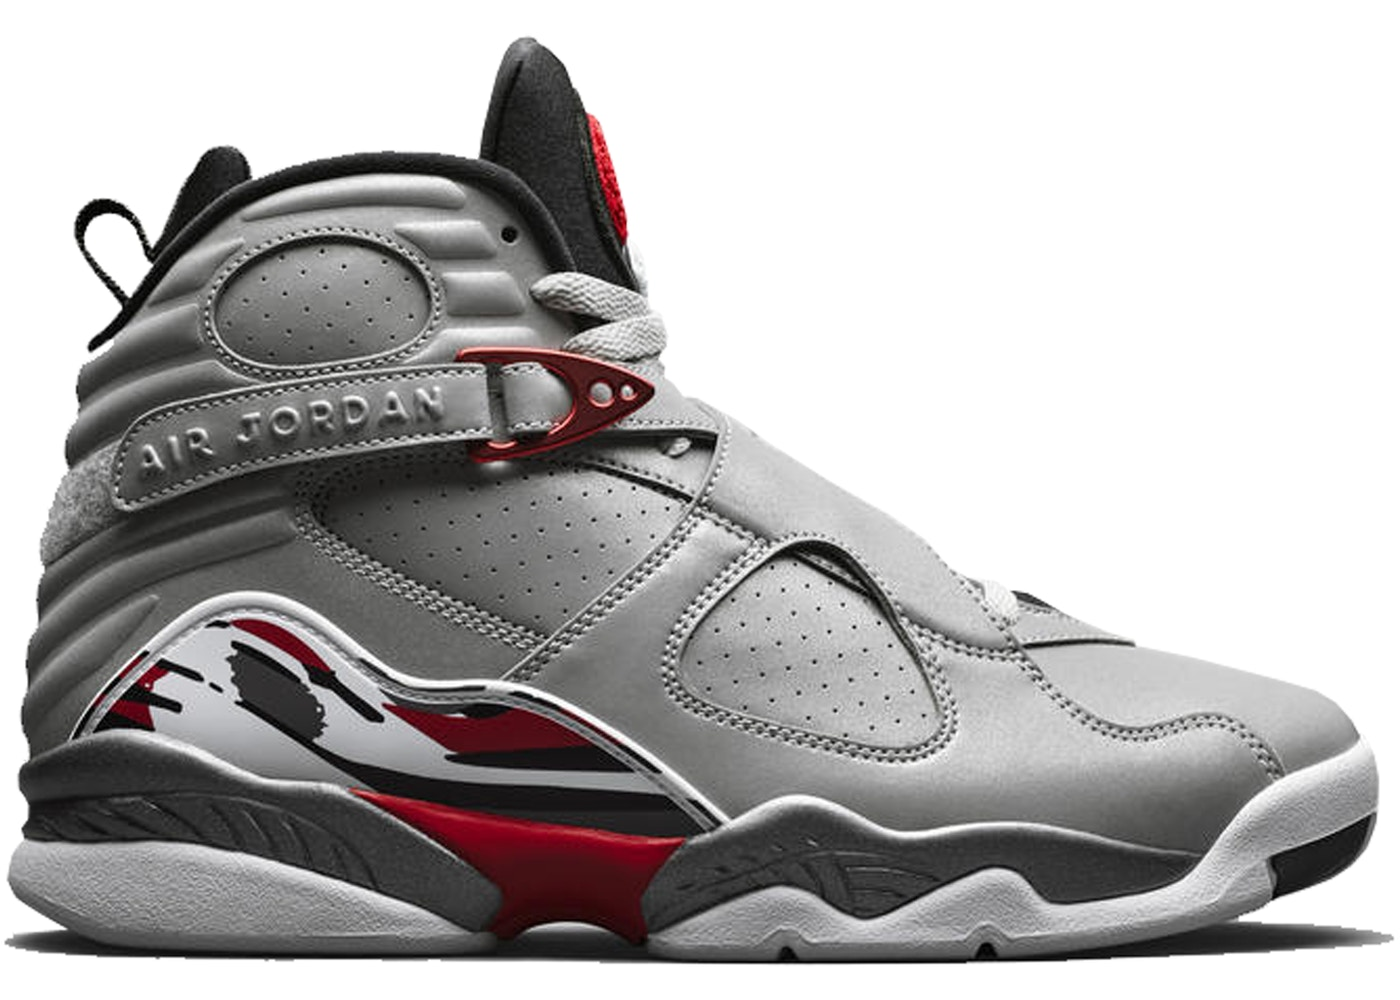 check out ac6f9 64d8e Air Jordan Shoes - Release Date